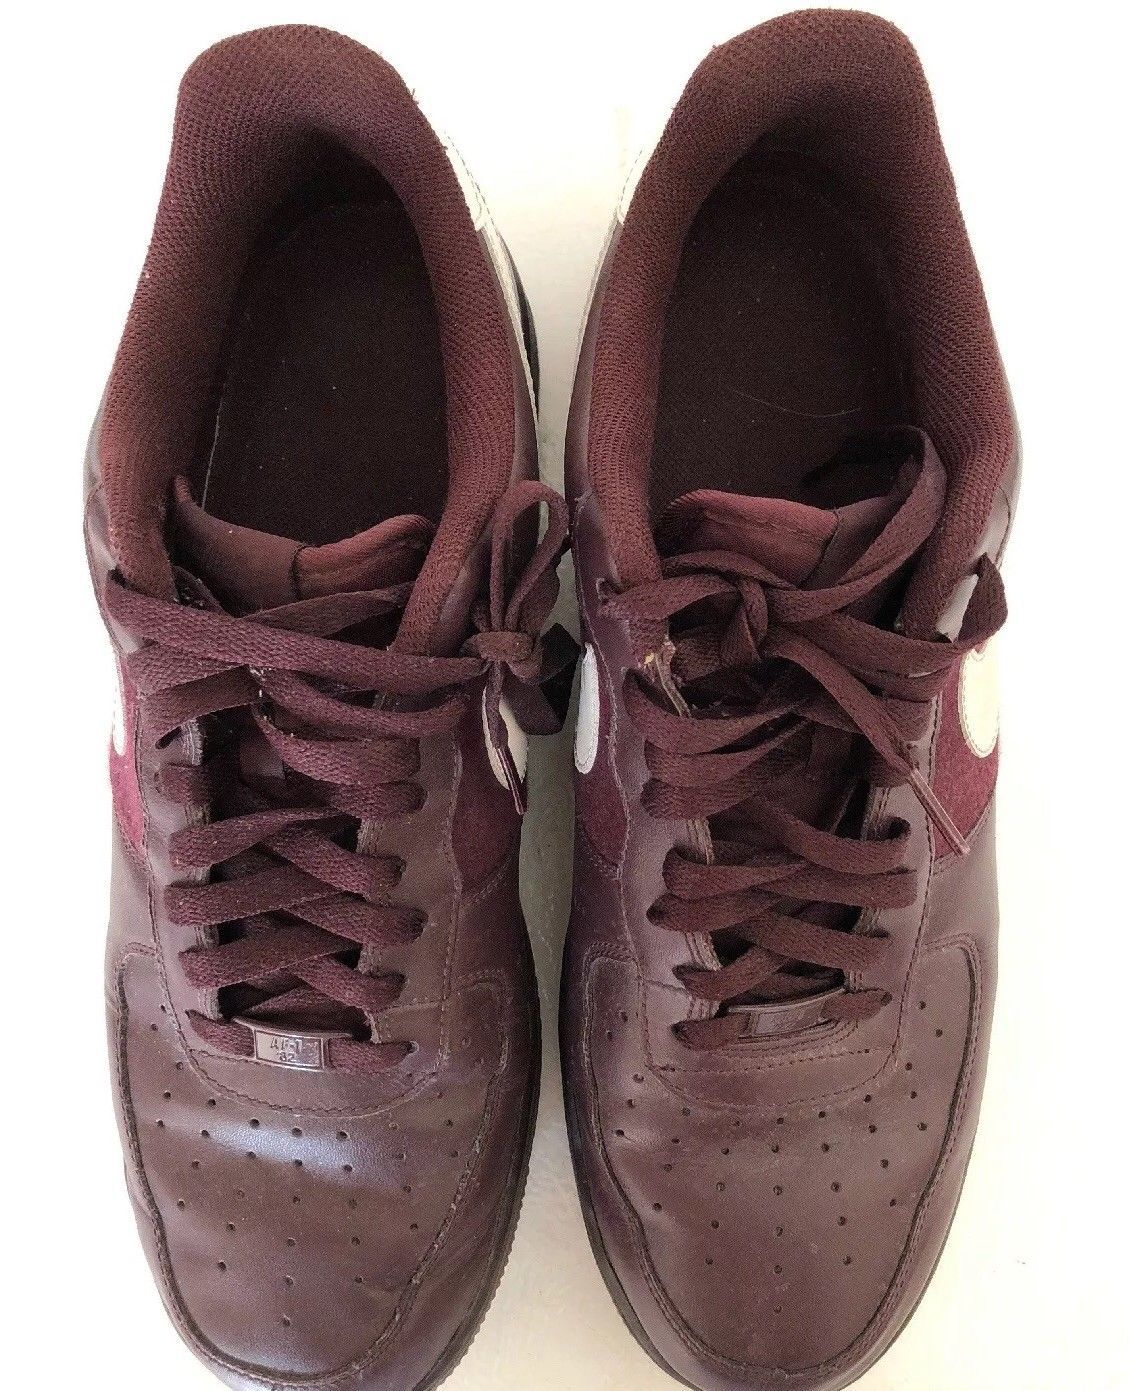 best website 67832 bddf7 Nike Air Force 1 Low Maroon Size 13 and 20 similar items